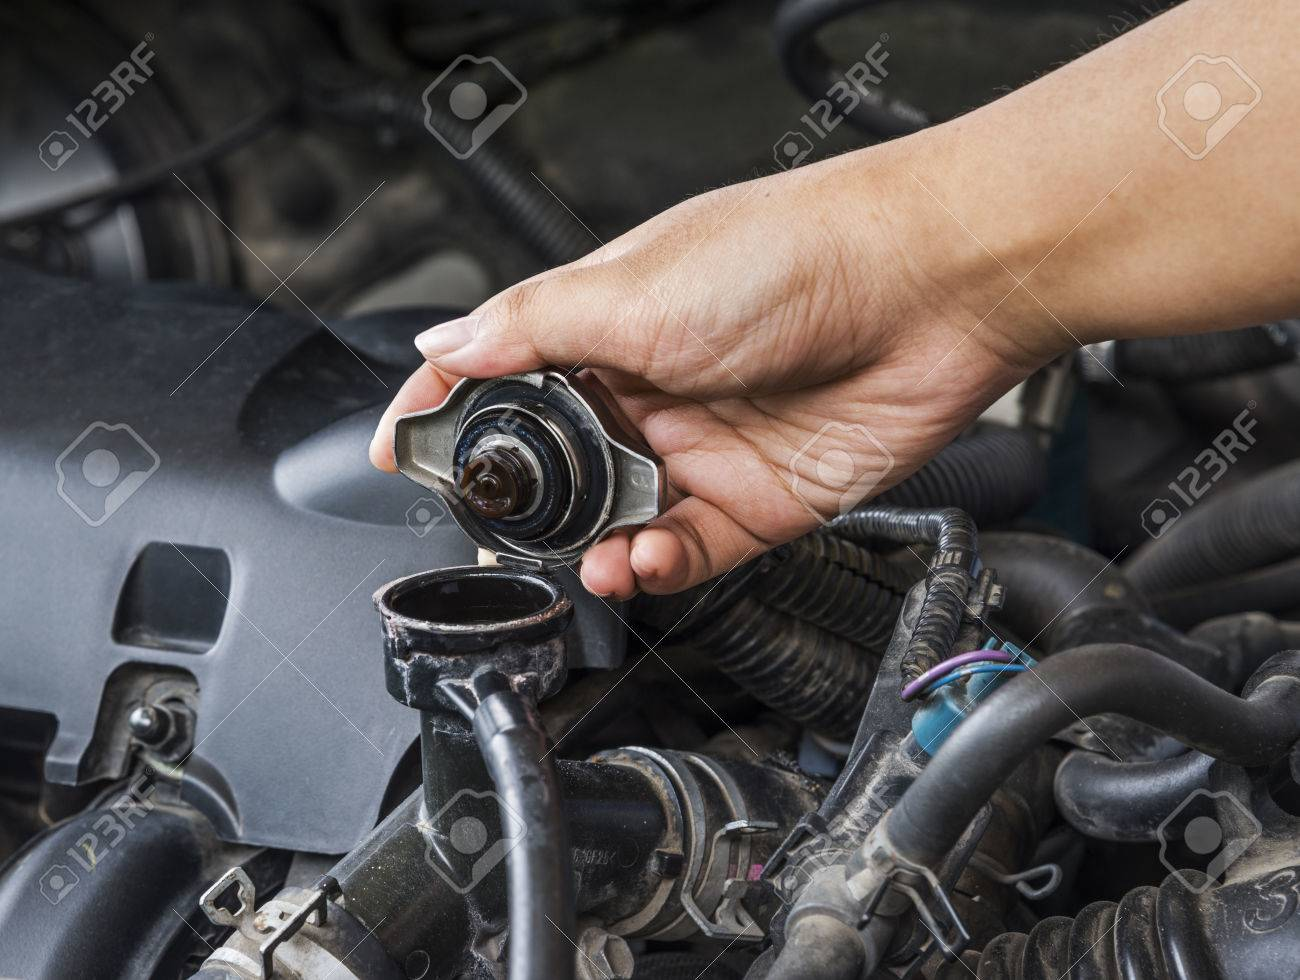 Check the radiator car for car care. Stock Photo - 28634683